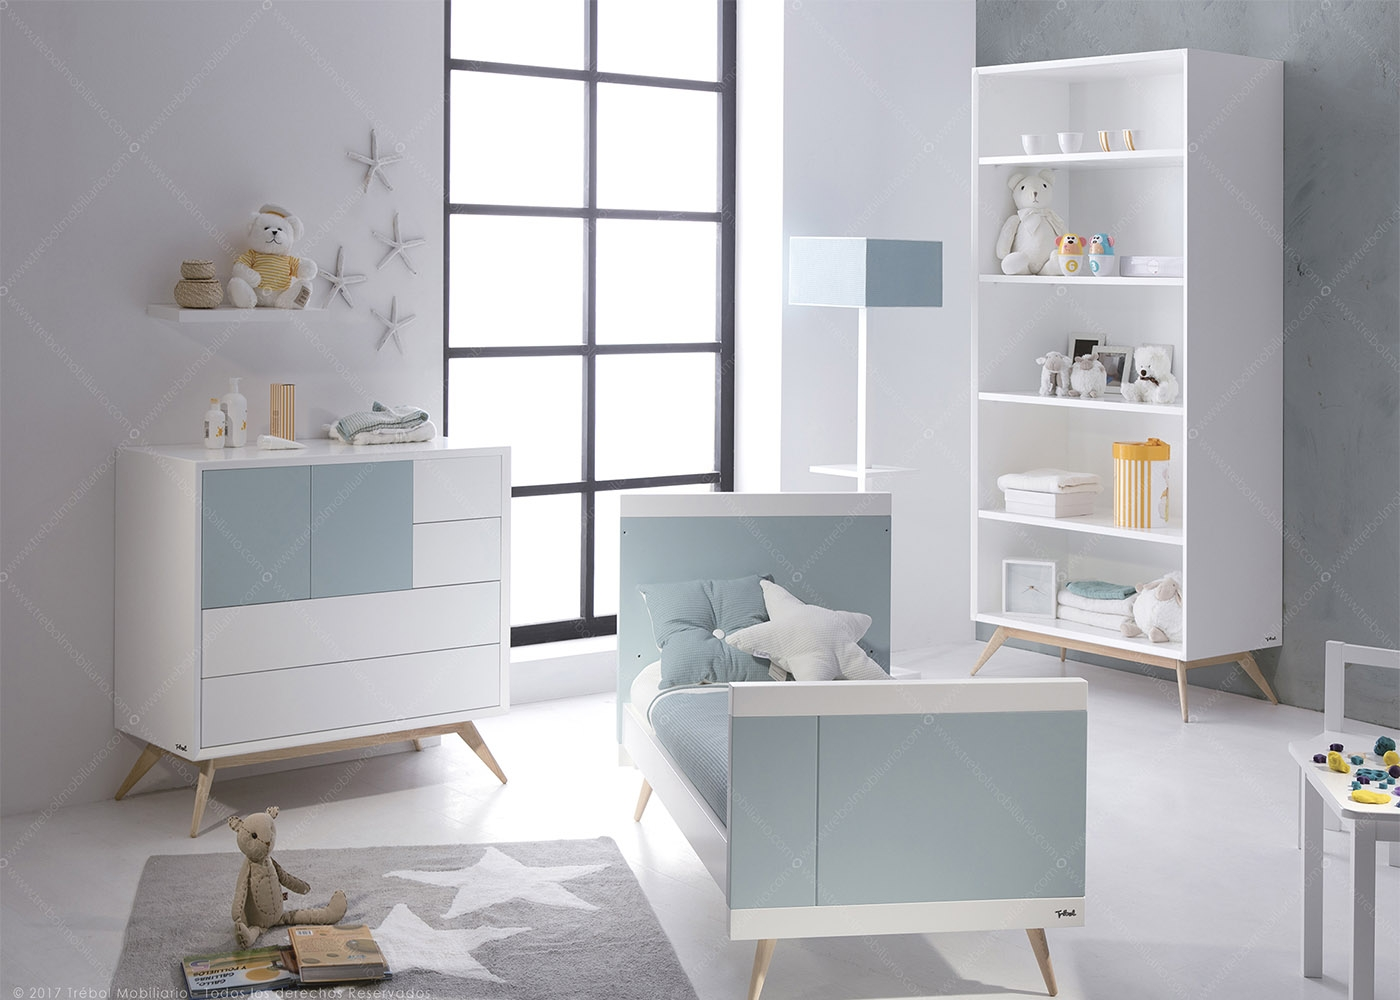 chambre enfant haut de gamme design scandinave chez ksl living. Black Bedroom Furniture Sets. Home Design Ideas